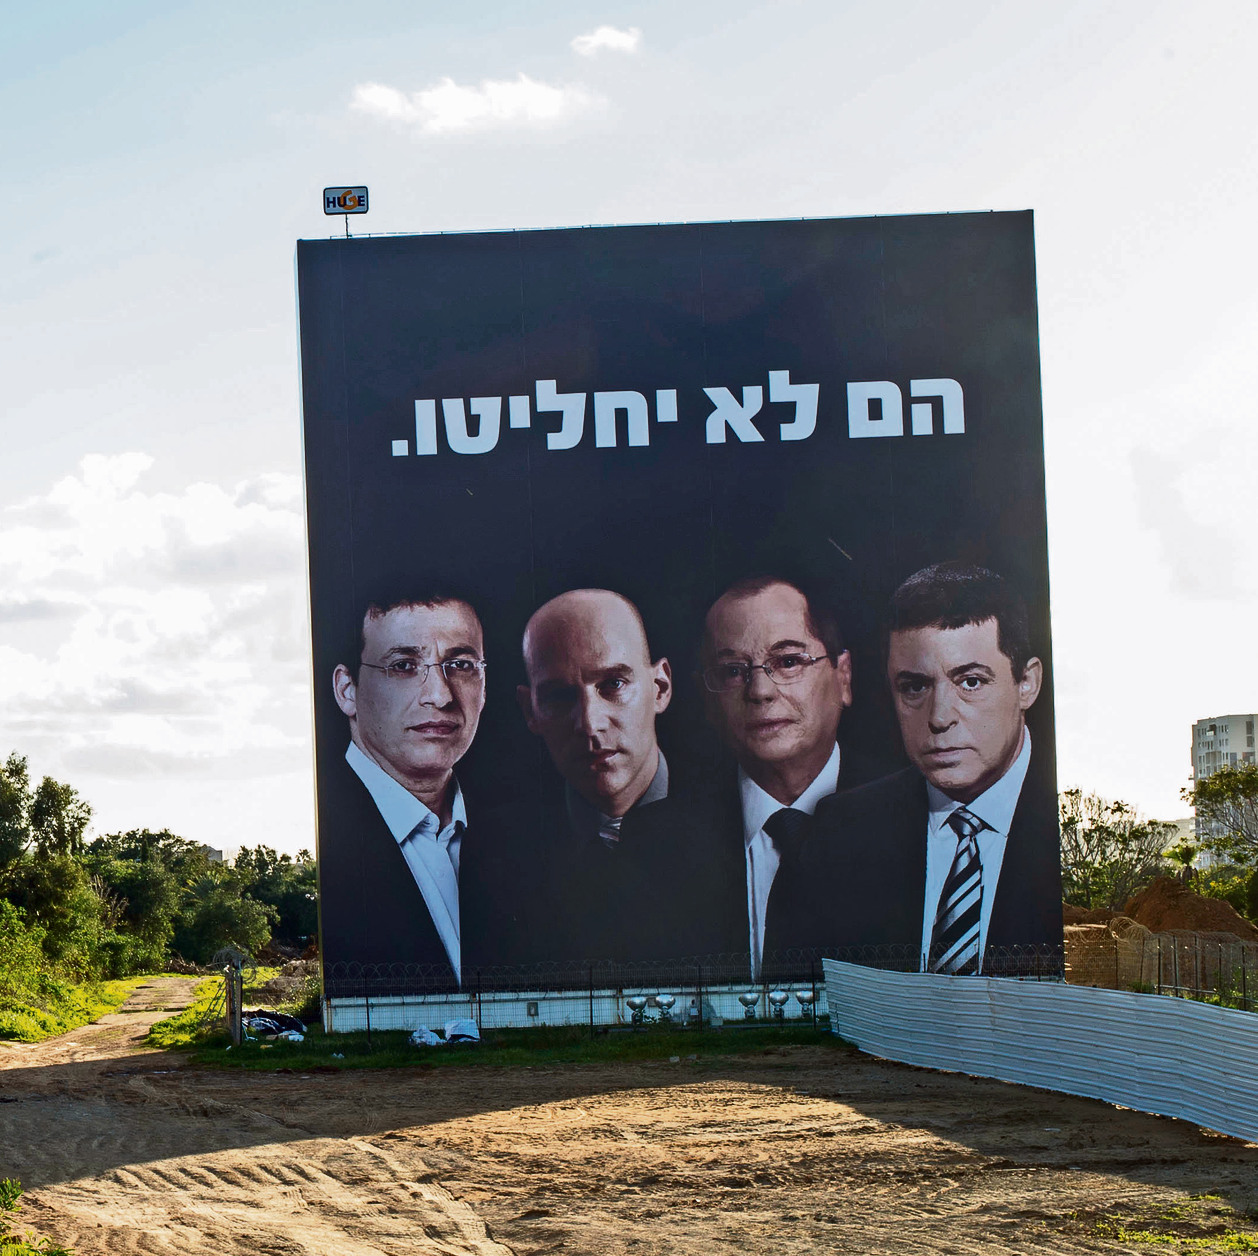 Billboard with photos of Israeli journalists and the tagline 'They will not decide'